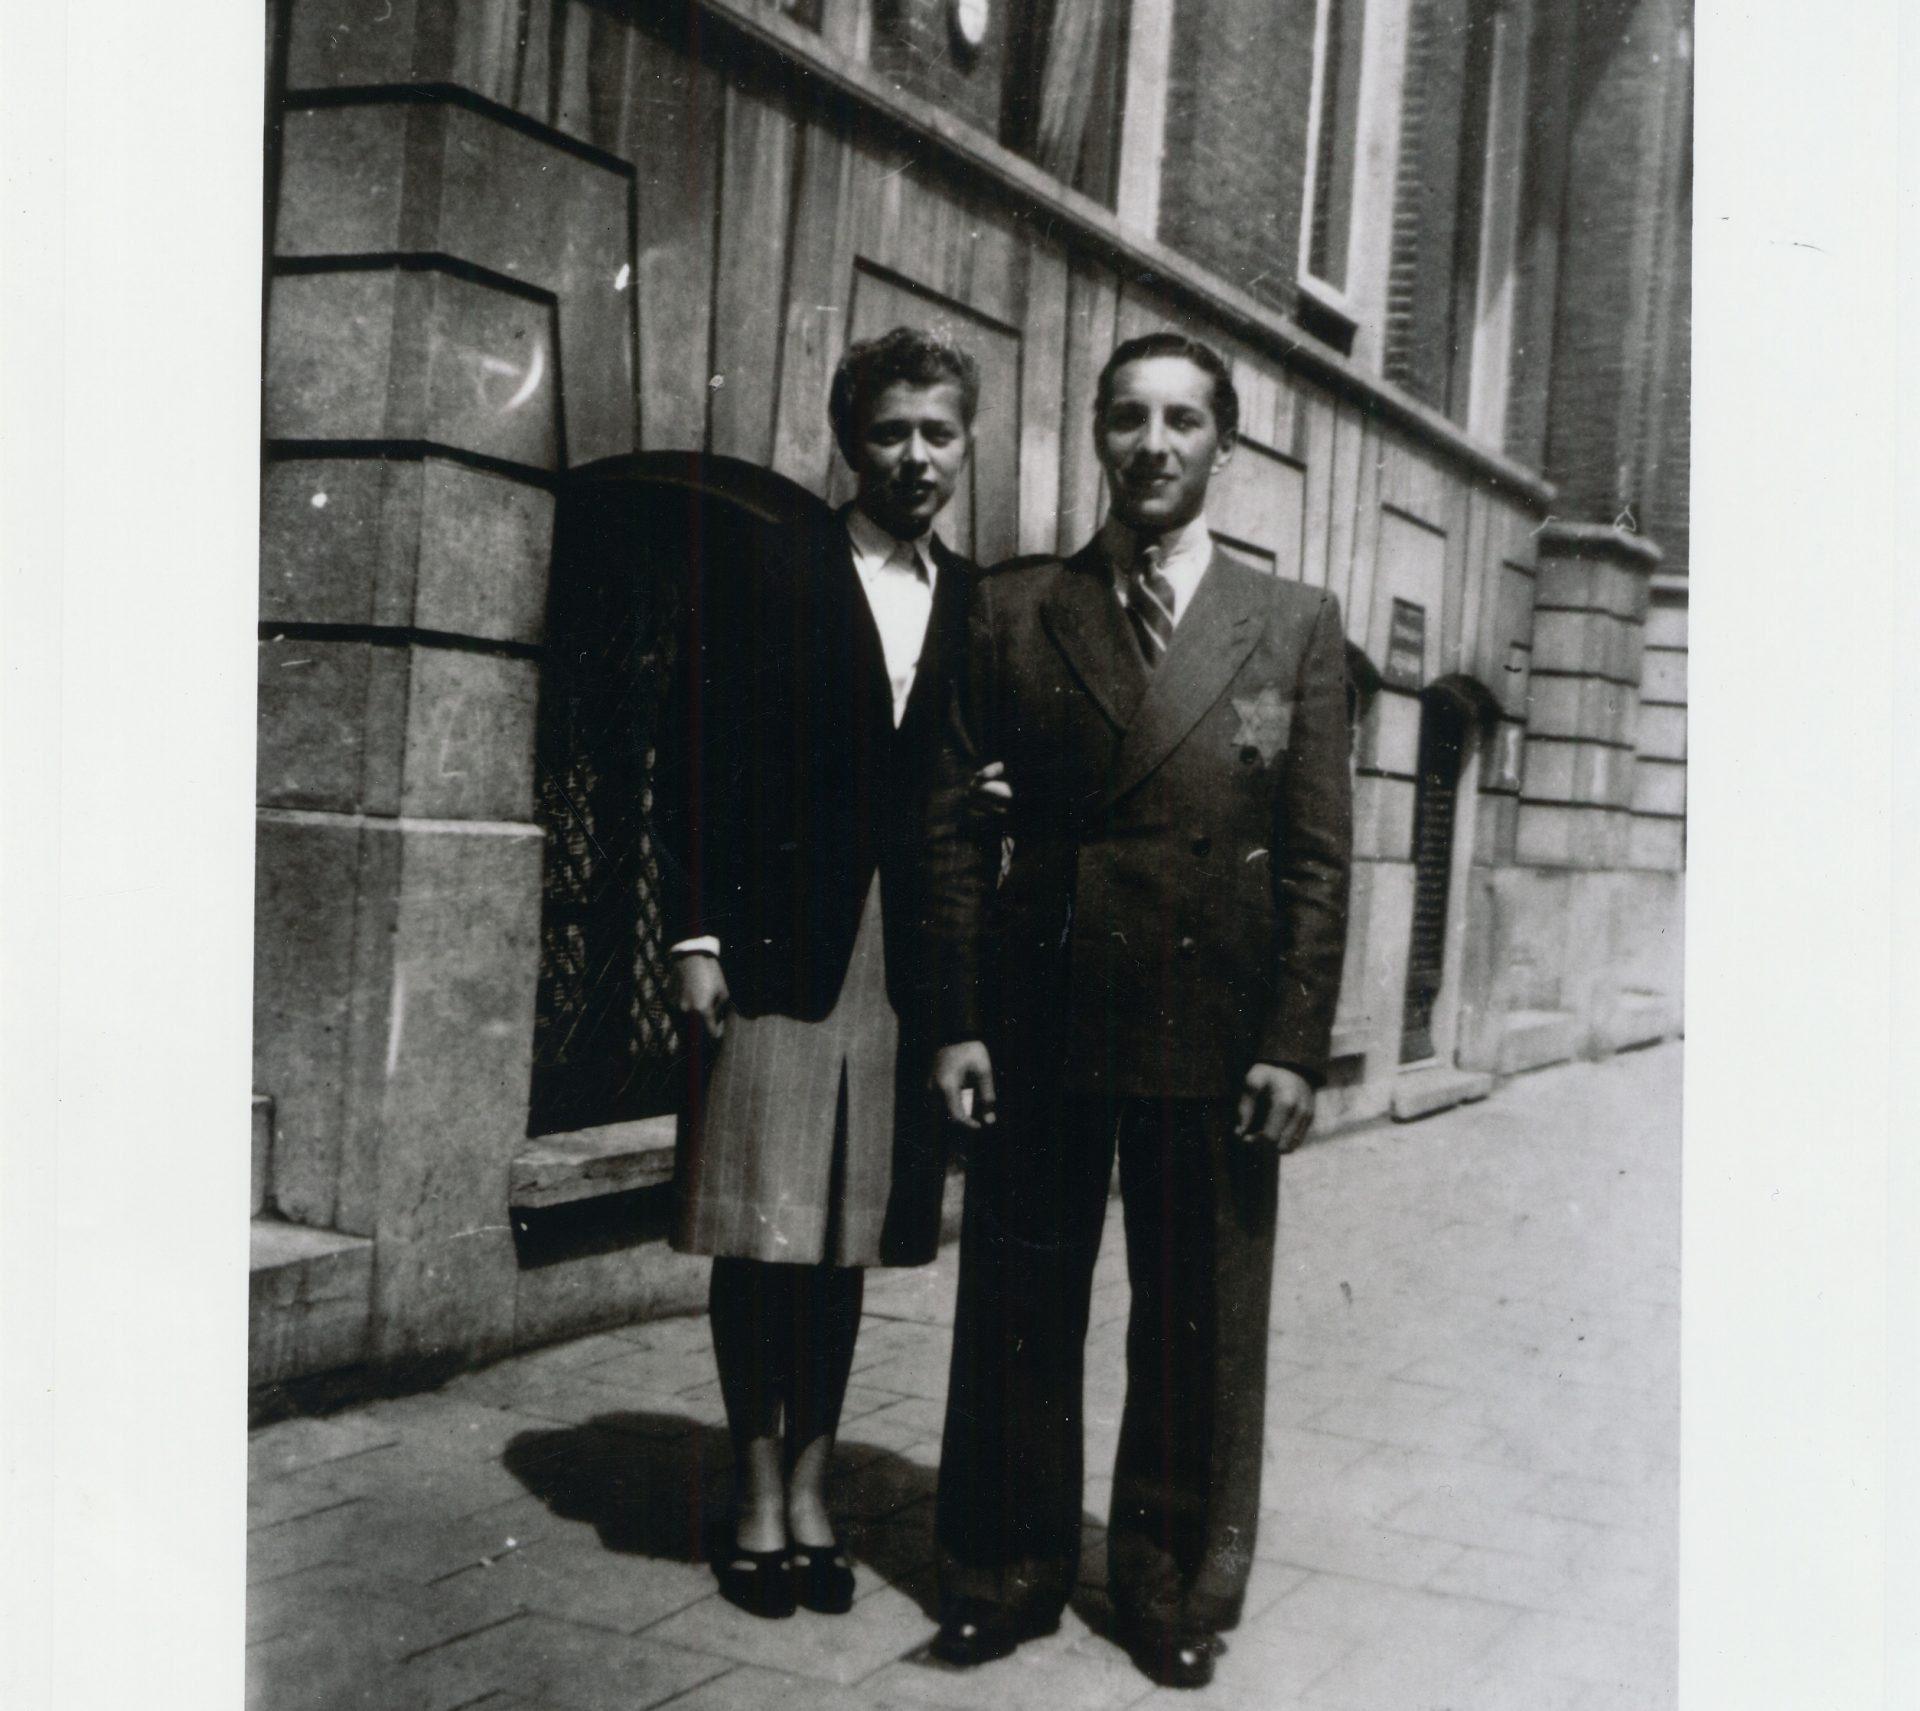 Samuel Schryver and his fiancée Jetty de Leeuw in Amsterdam's Jewish quarter in 1943. The yellow star is visible on the young man's suit.